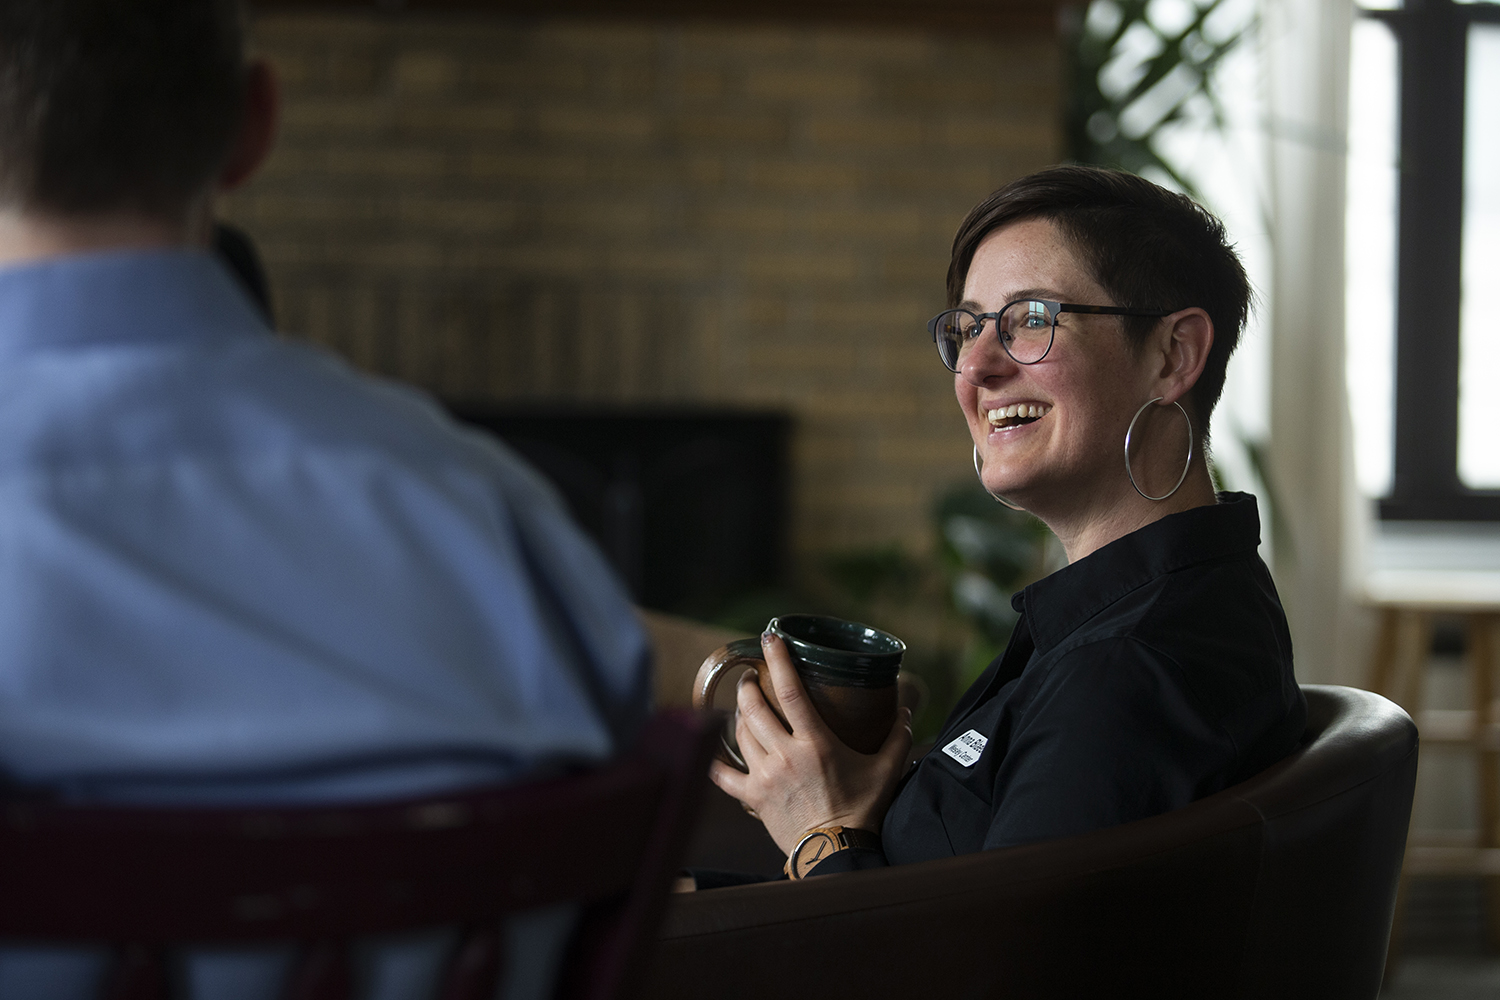 Rev. Anna Blaedel listens during a Bible study at the Wesley Center on Wednesday, May 1, 2019. Openly queer, Rev. Blaedel faced formal complaints by the United Methodist Church.